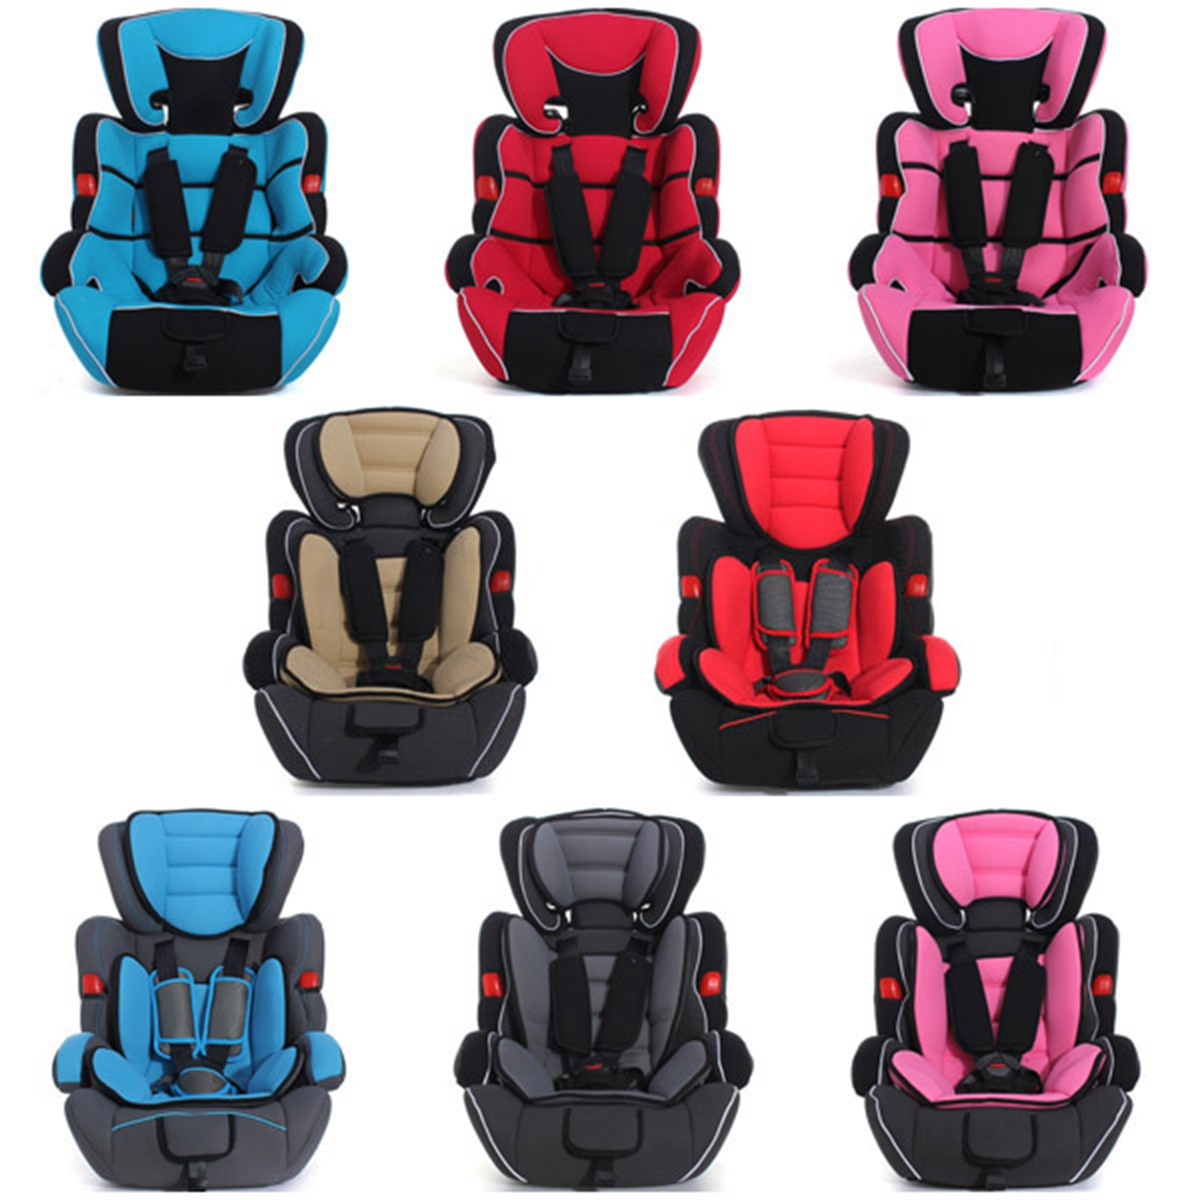 Adjustable Baby Car Seat Child Safety Booster Seat for 9 Months-12 Years 9-36 kg ECE R44/04 children red black adjustable cotton child car safety seats comfortable infant practical baby cushion for kids 9 months 12 years